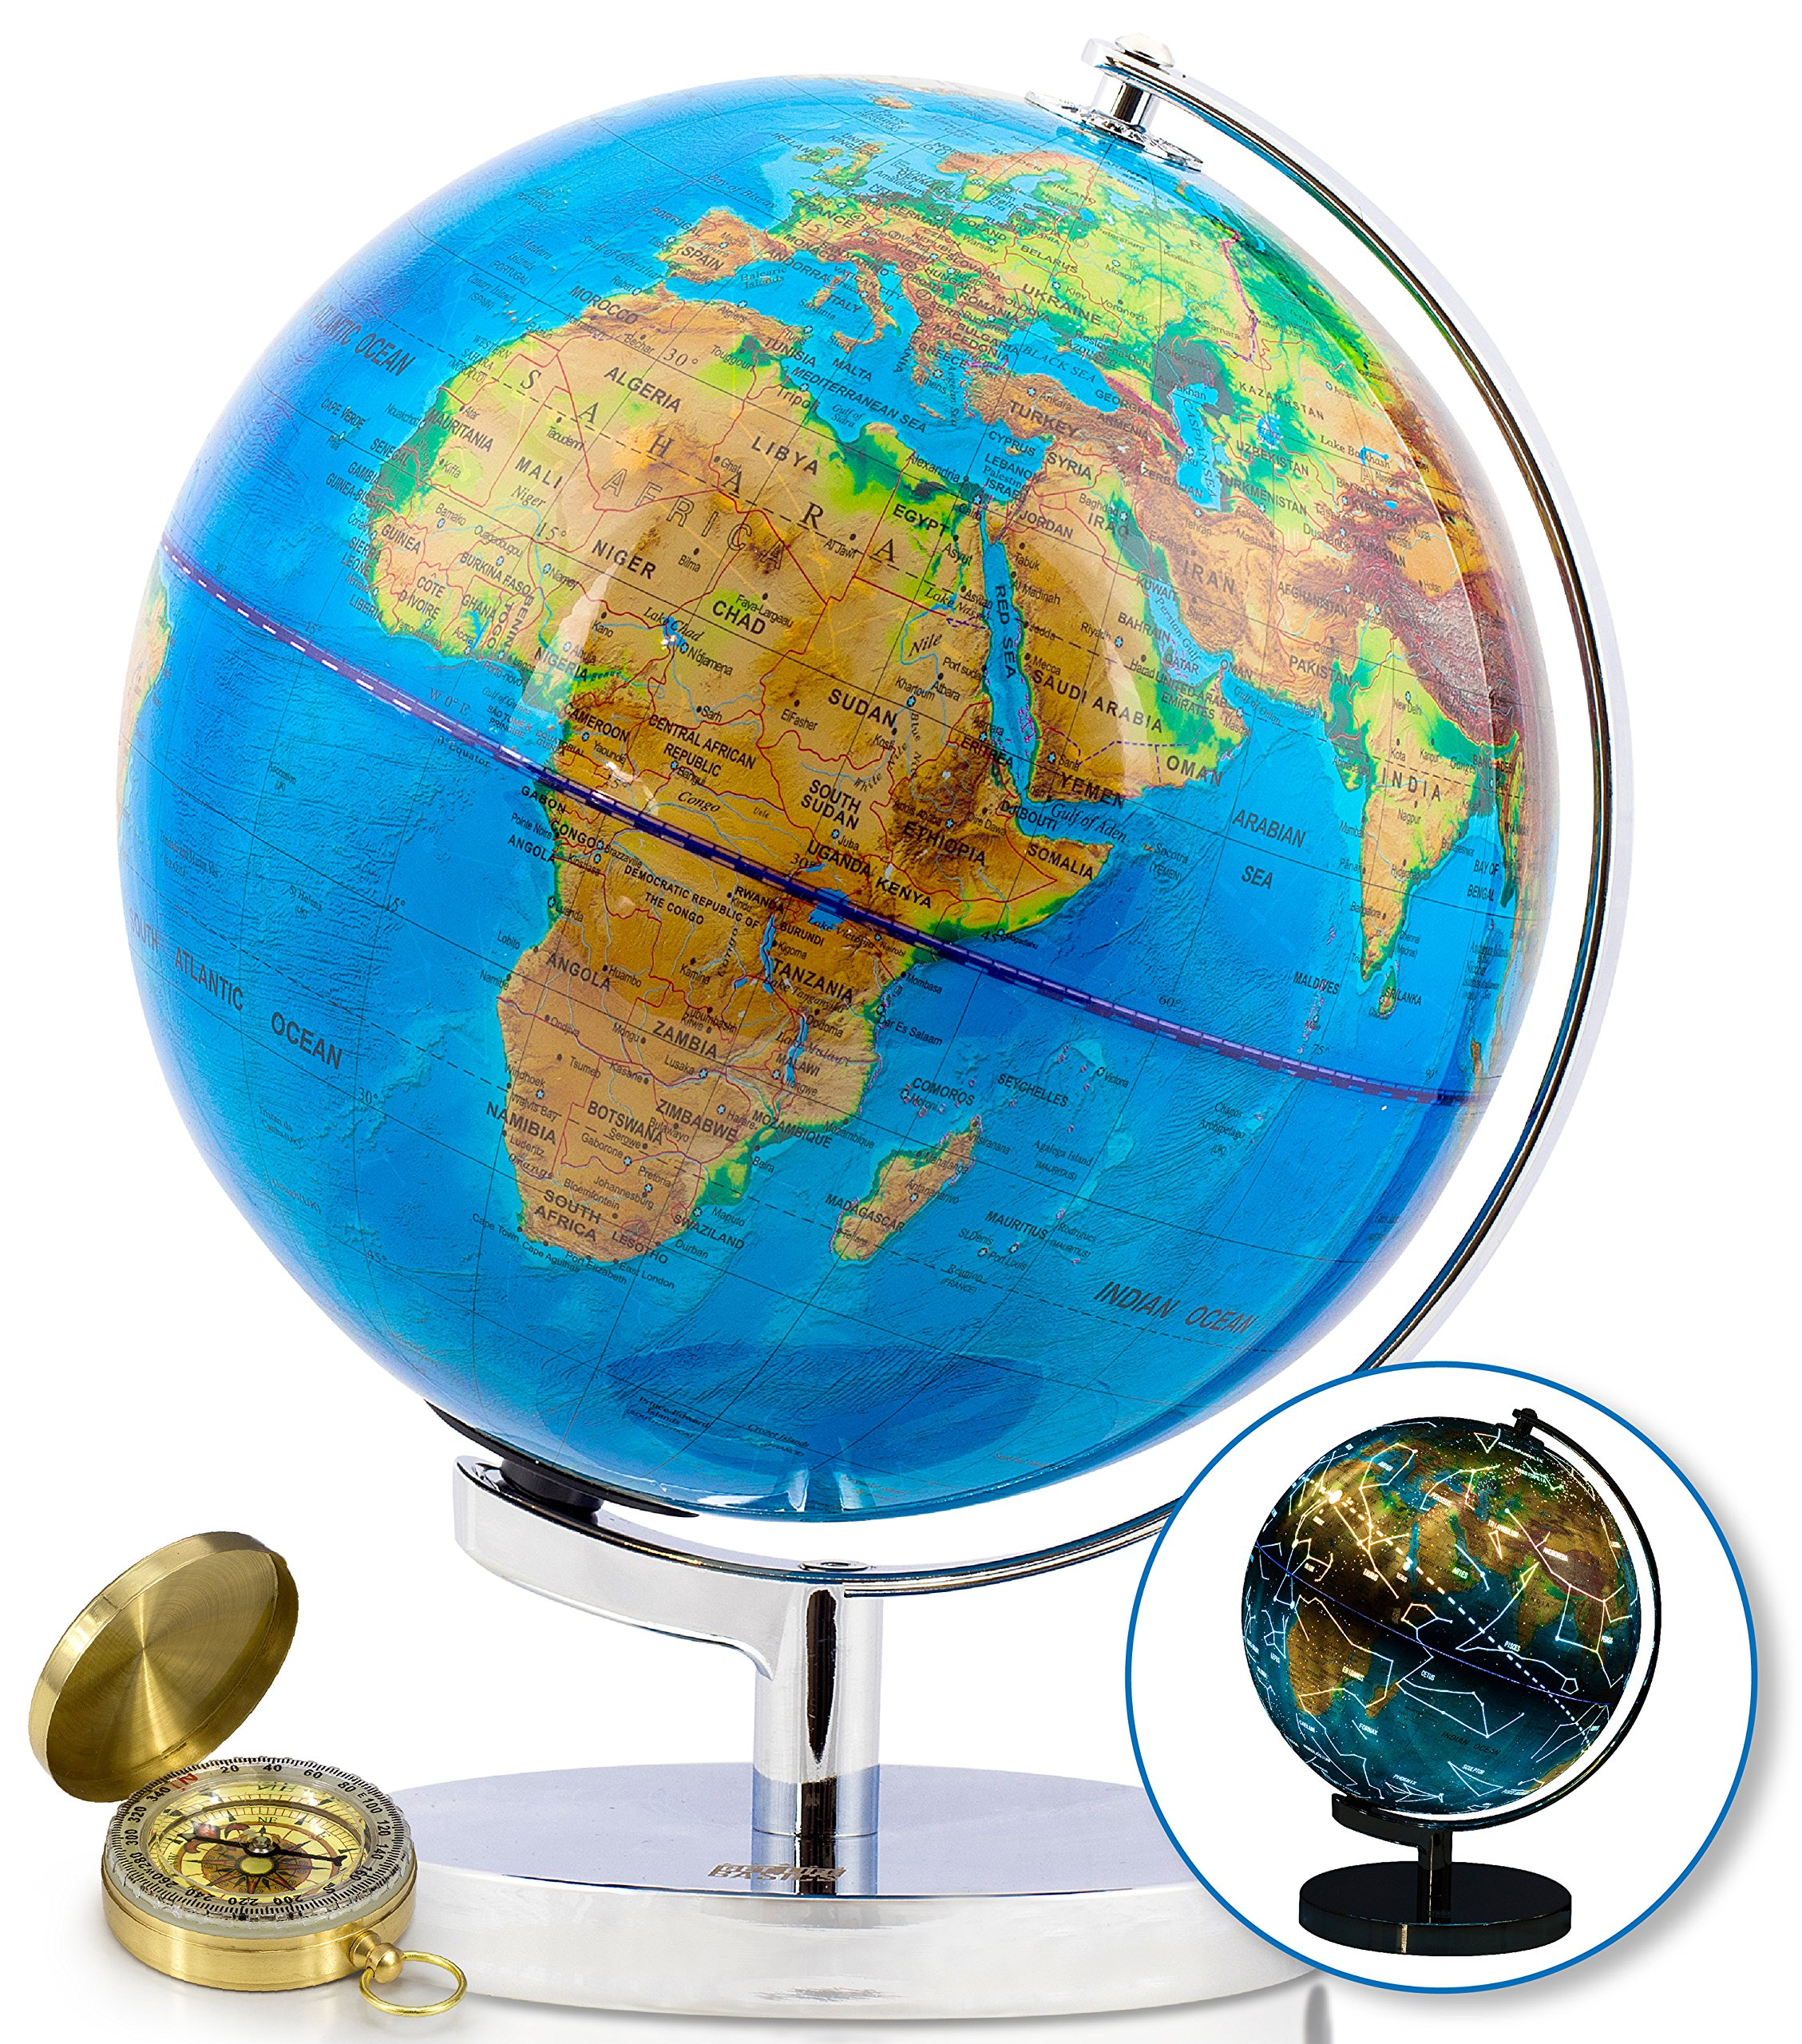 9 Inch World Globe & Compass by GetLifeBasics: See The Earth and The Stars in Details. Large Illuminated Constellation View Night, Kids Educational Astronomy & Geographic Map